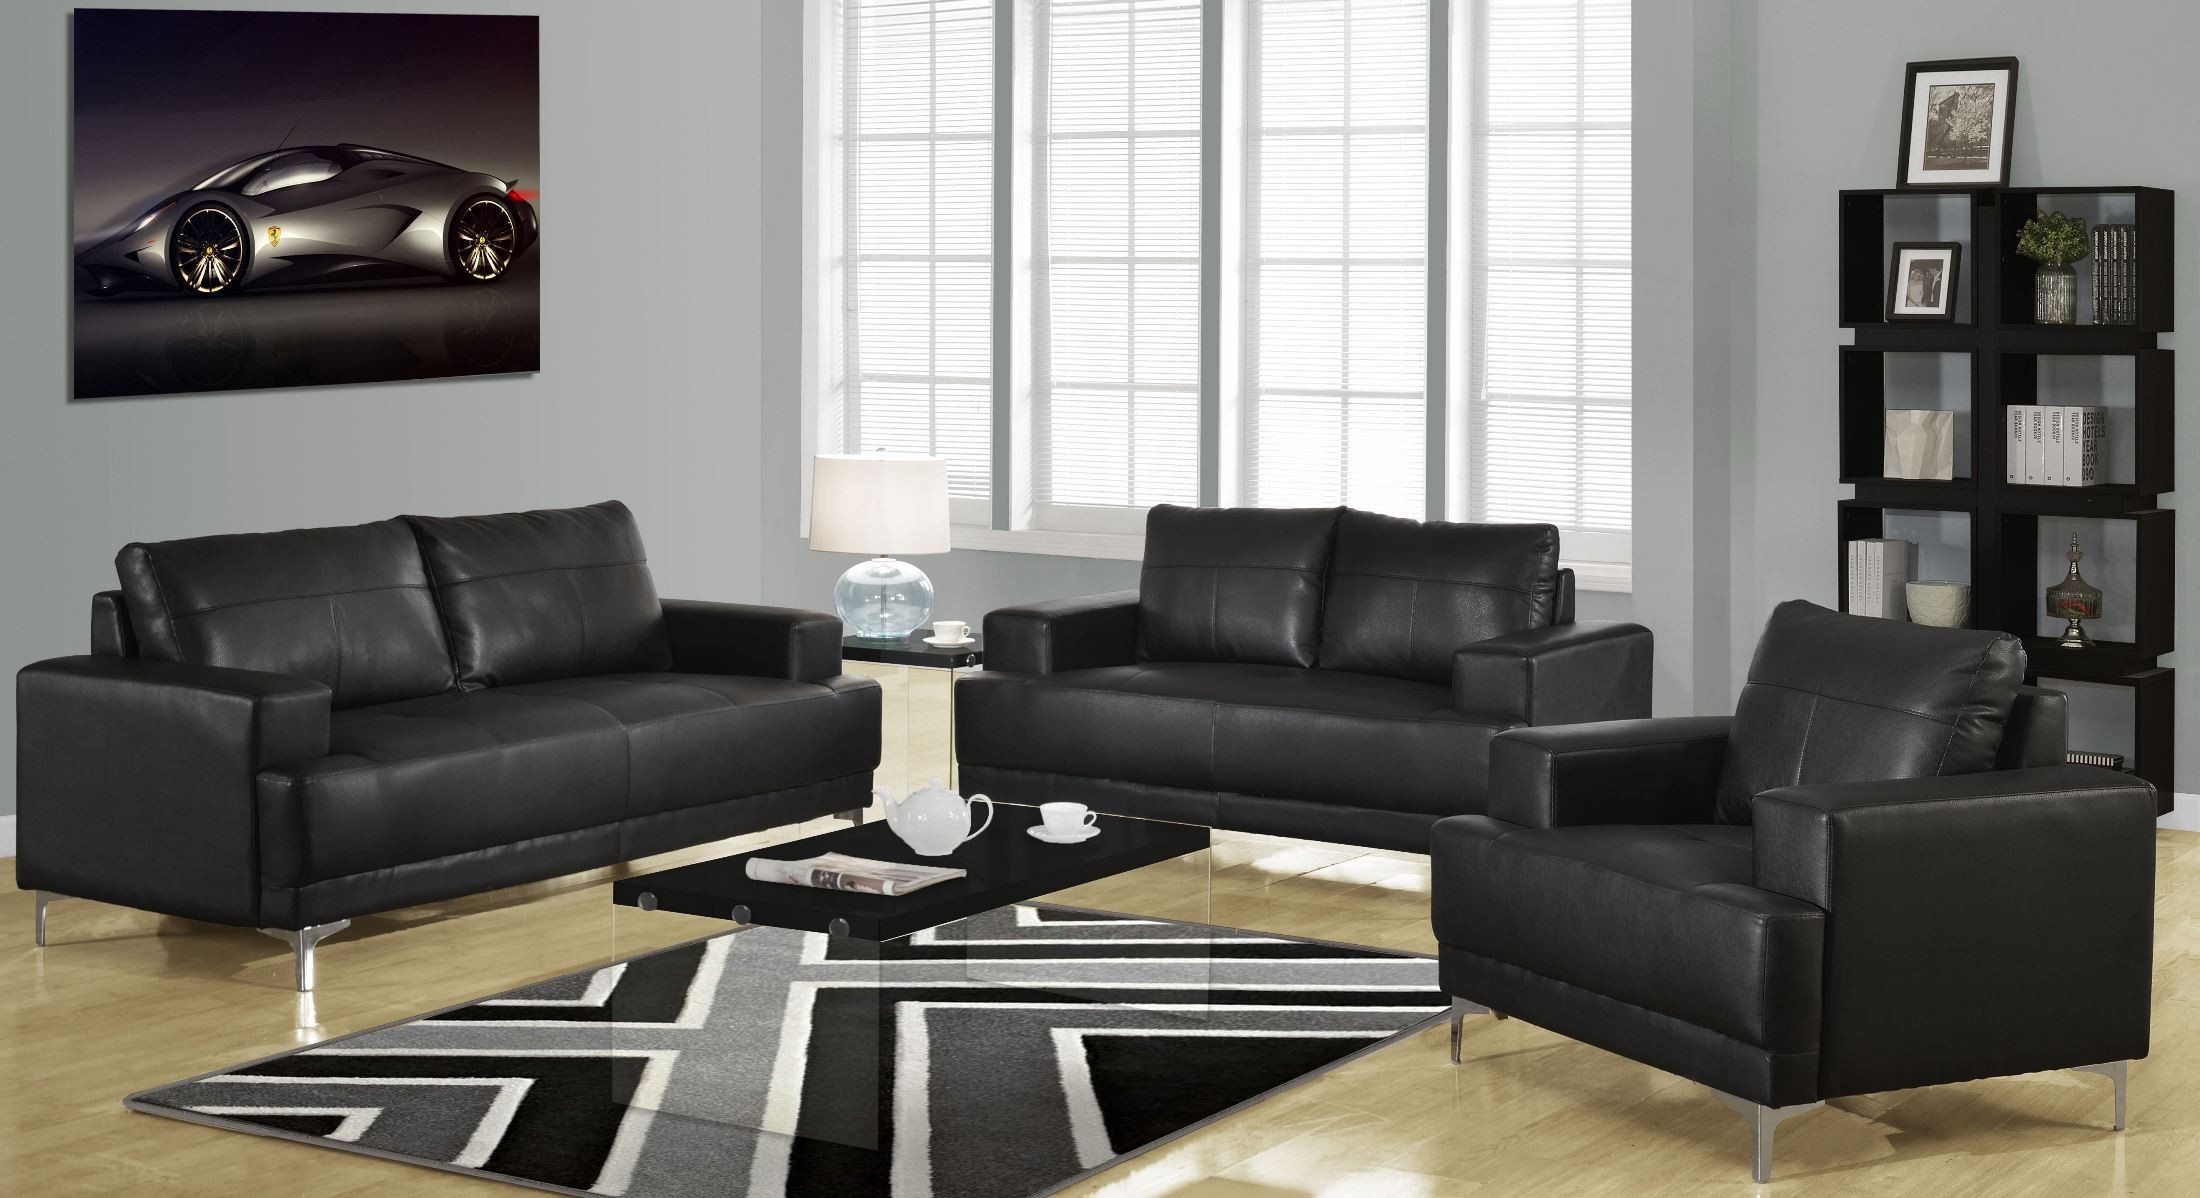 8603bk black bonded leather living room set 8603bk monarch. Black Bedroom Furniture Sets. Home Design Ideas